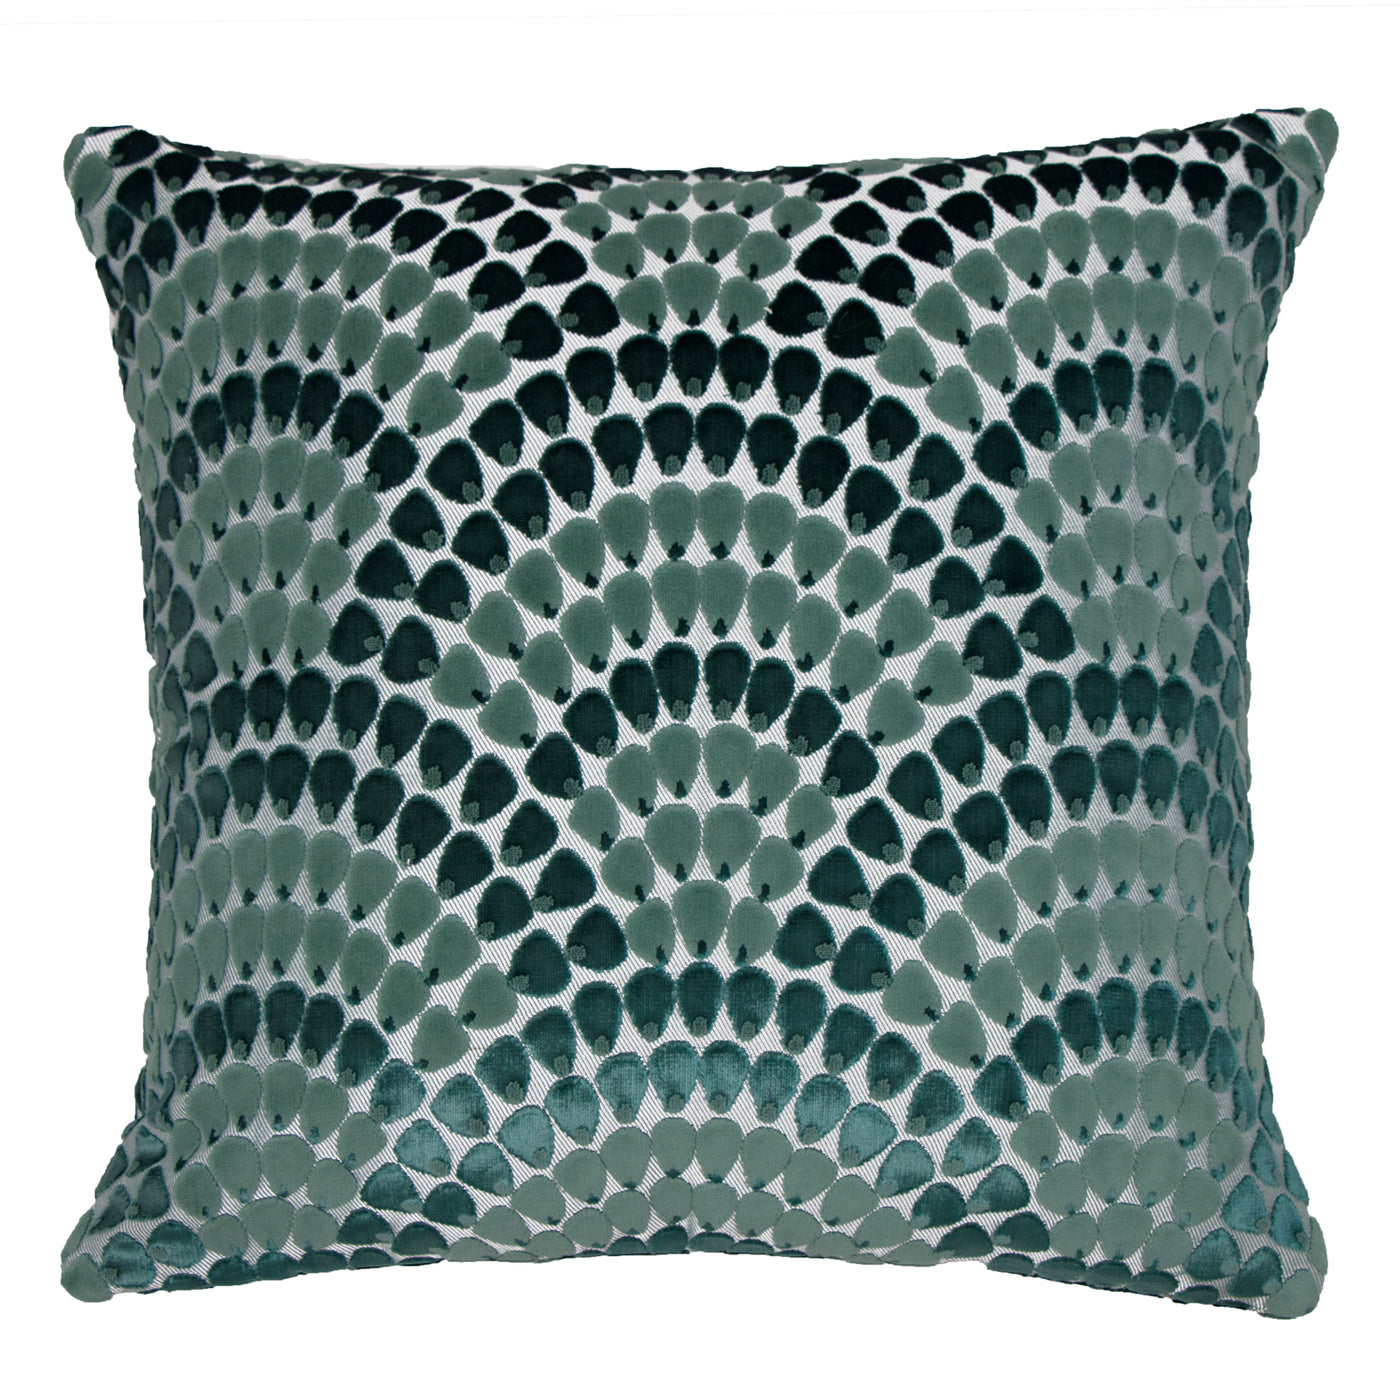 Landis Pillow - Peacock